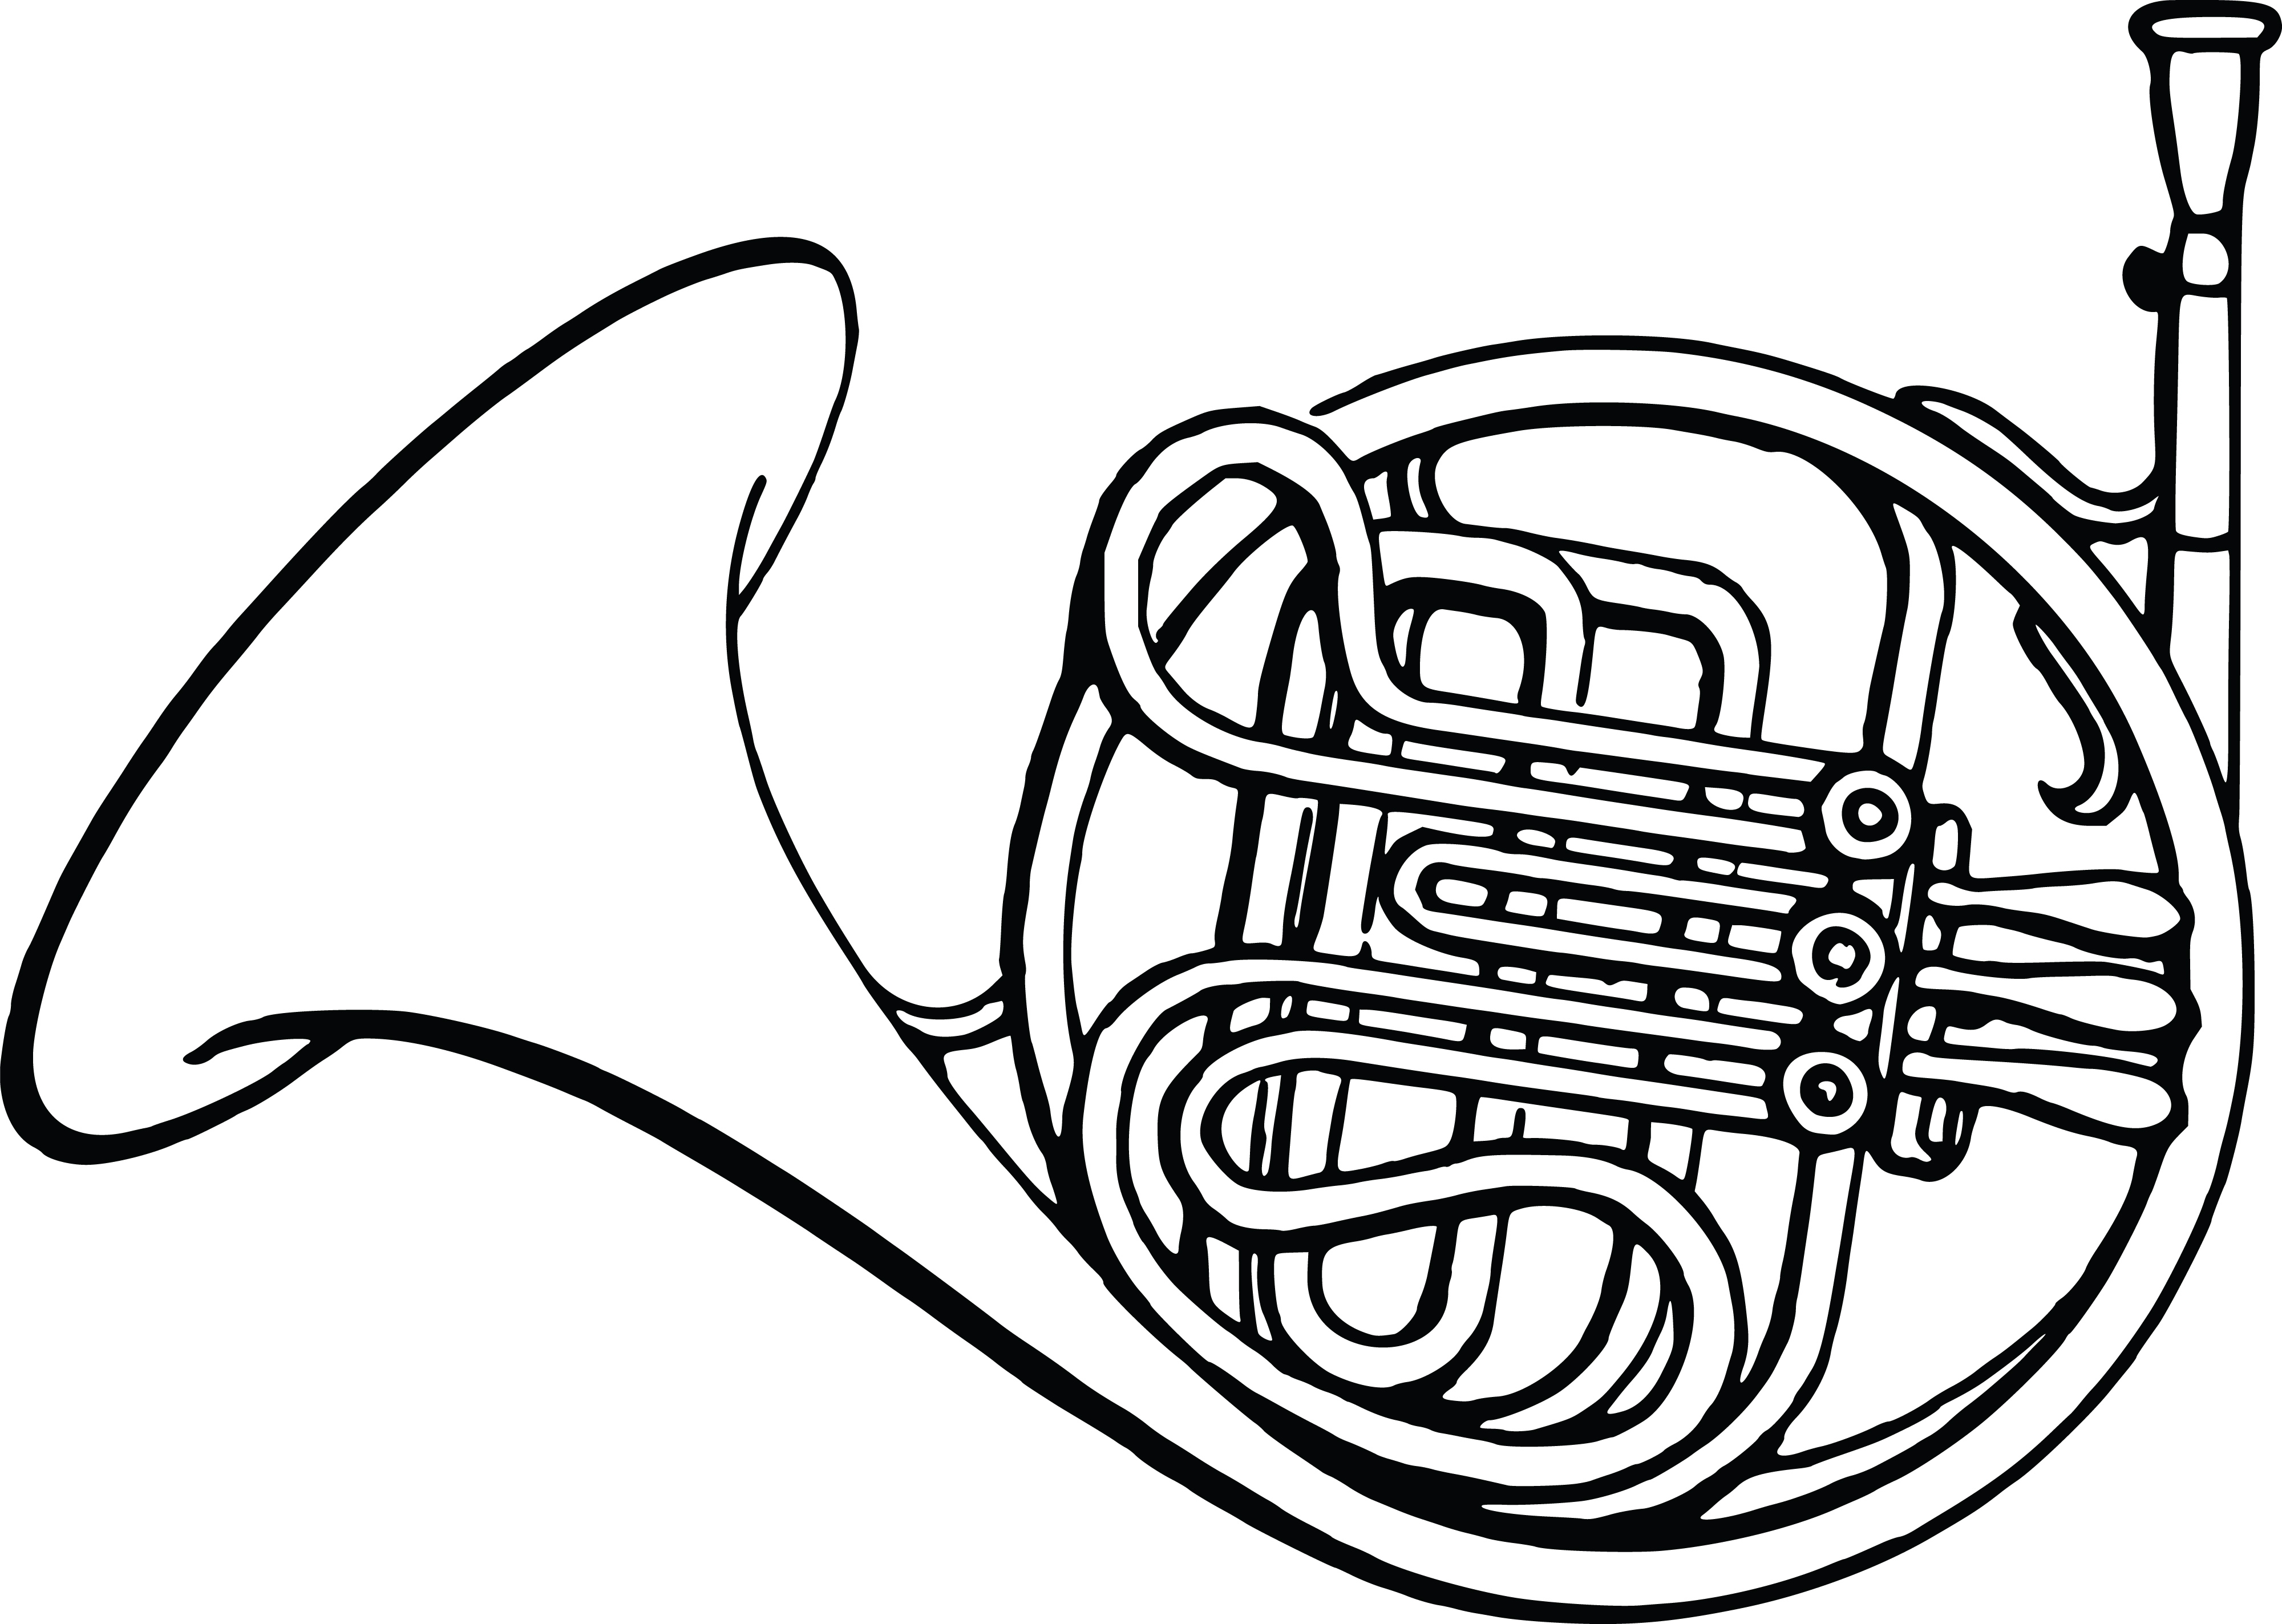 Free Clipart Of A french horn.